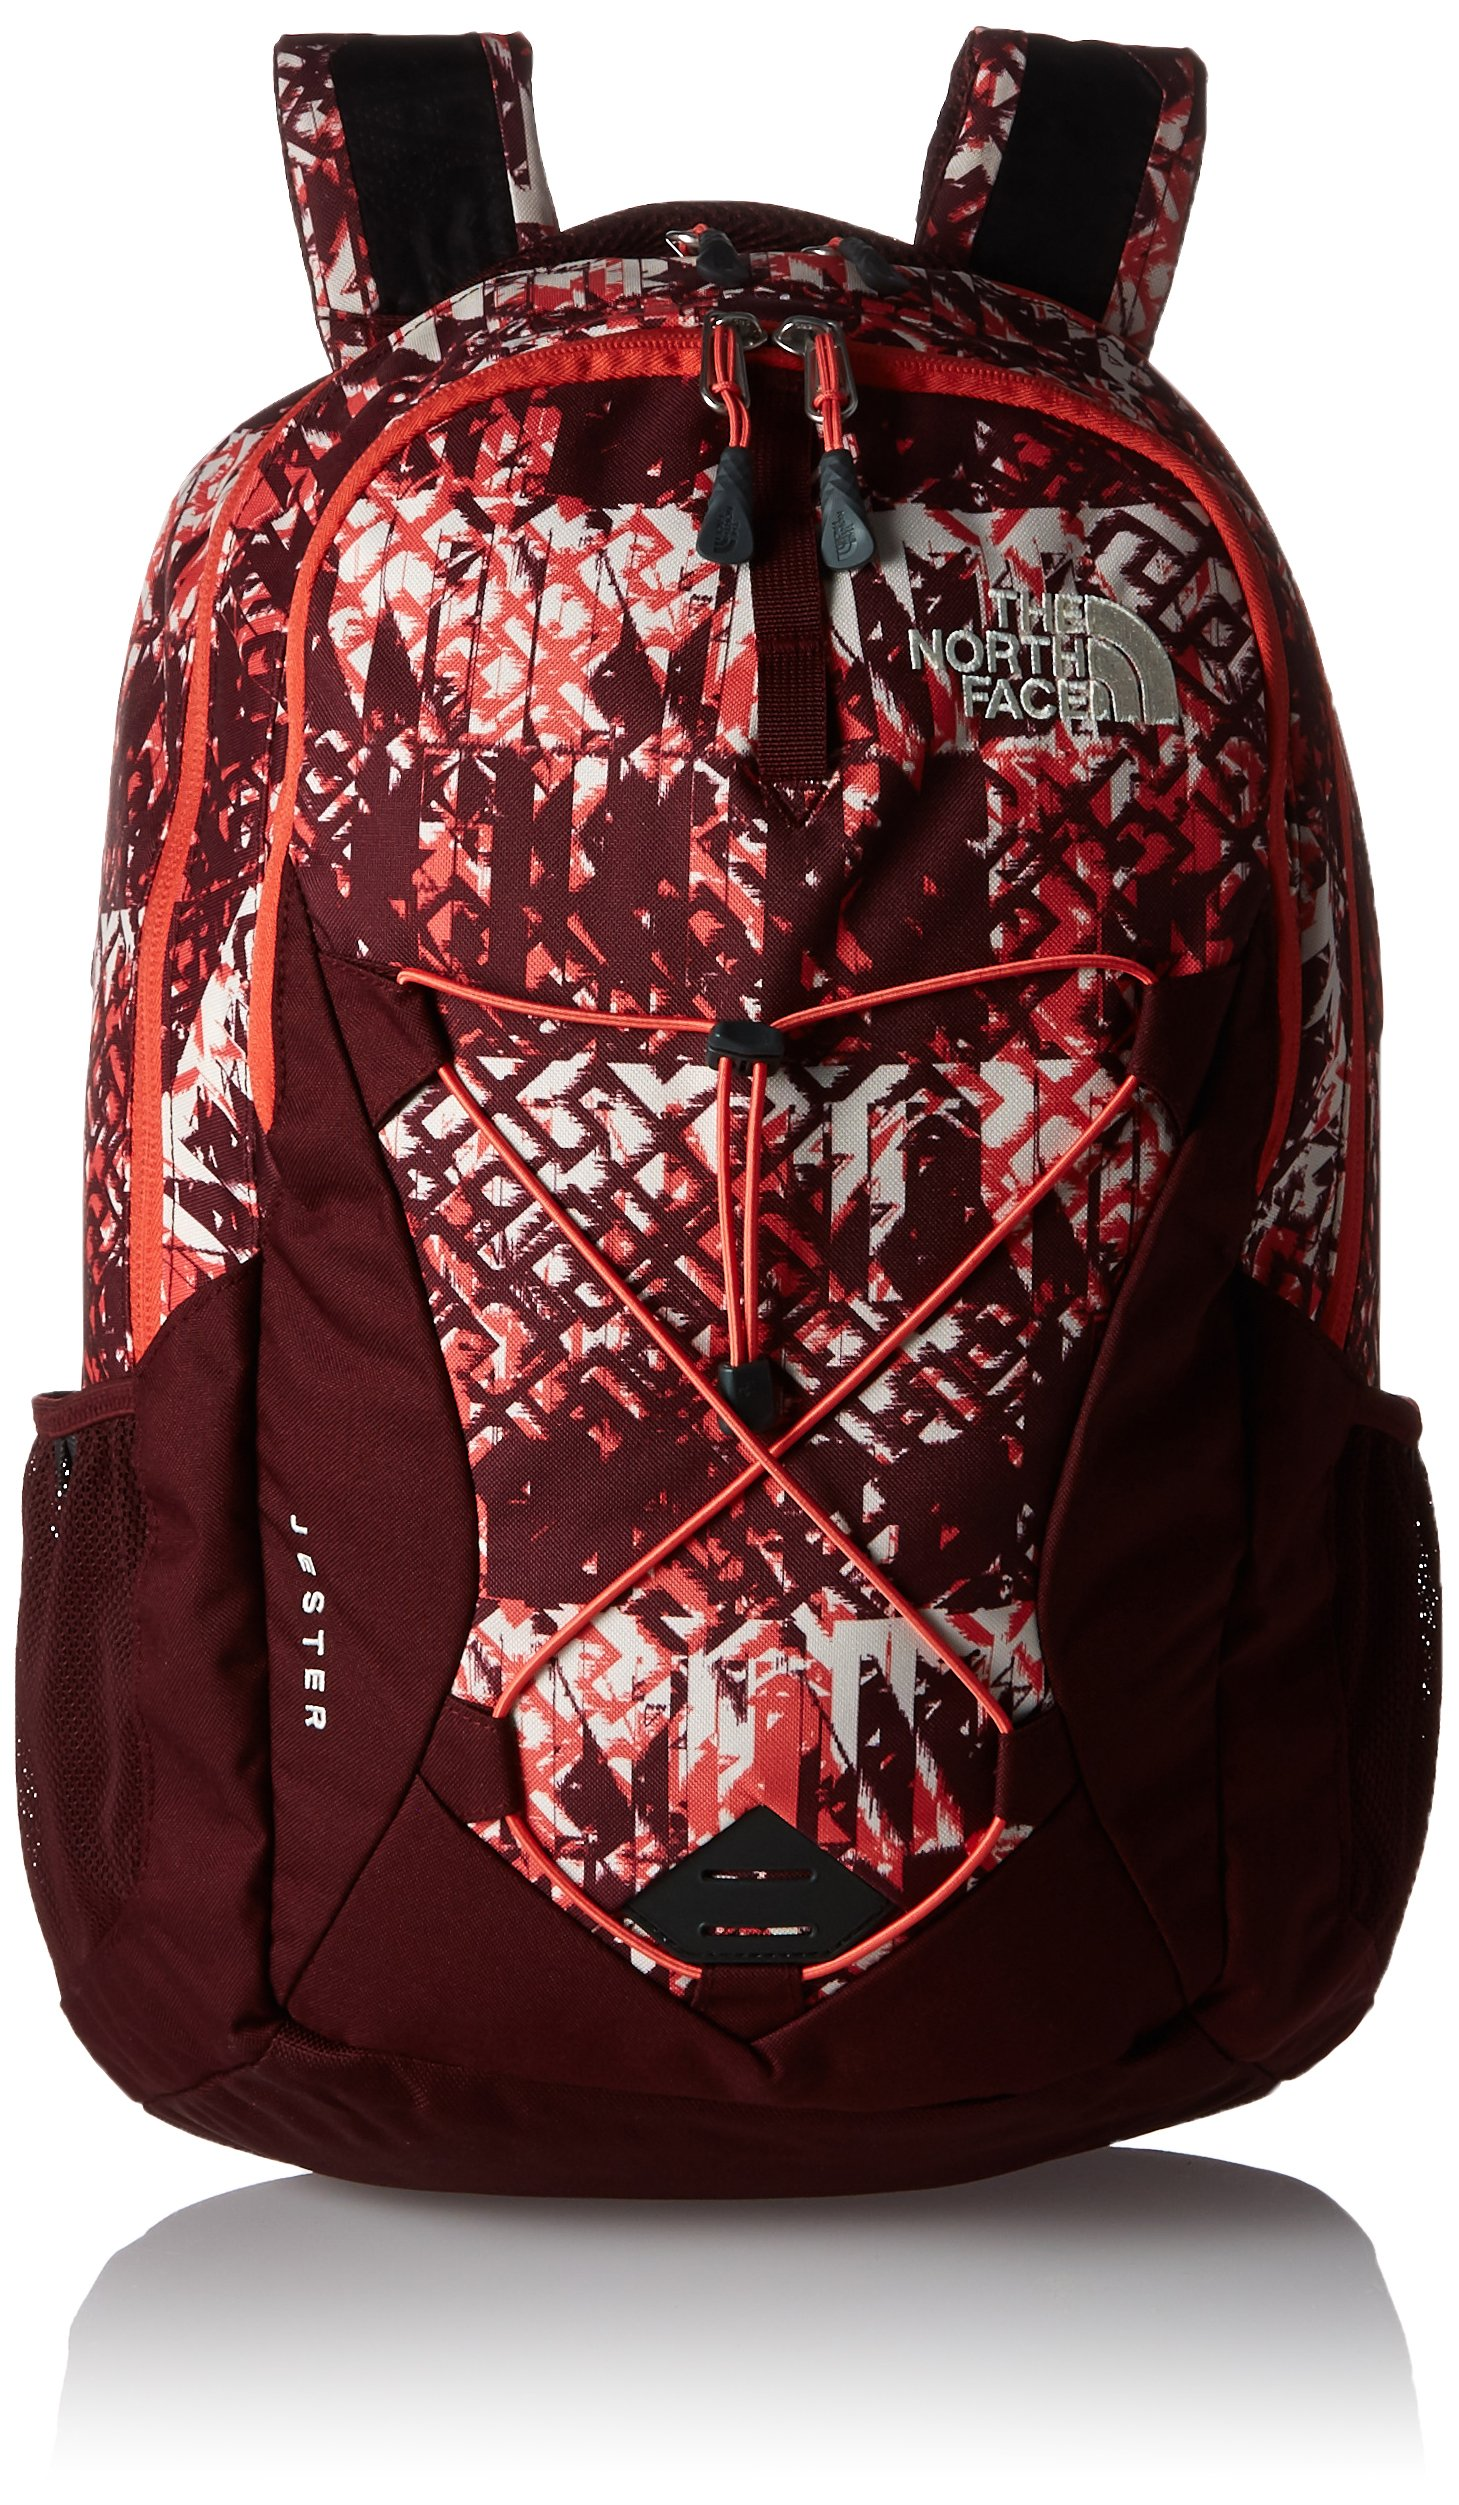 The North Face Women's Women's Jester Deep Garnet Red Ethnique Print/Deep Garnet Red Backpack by The North Face